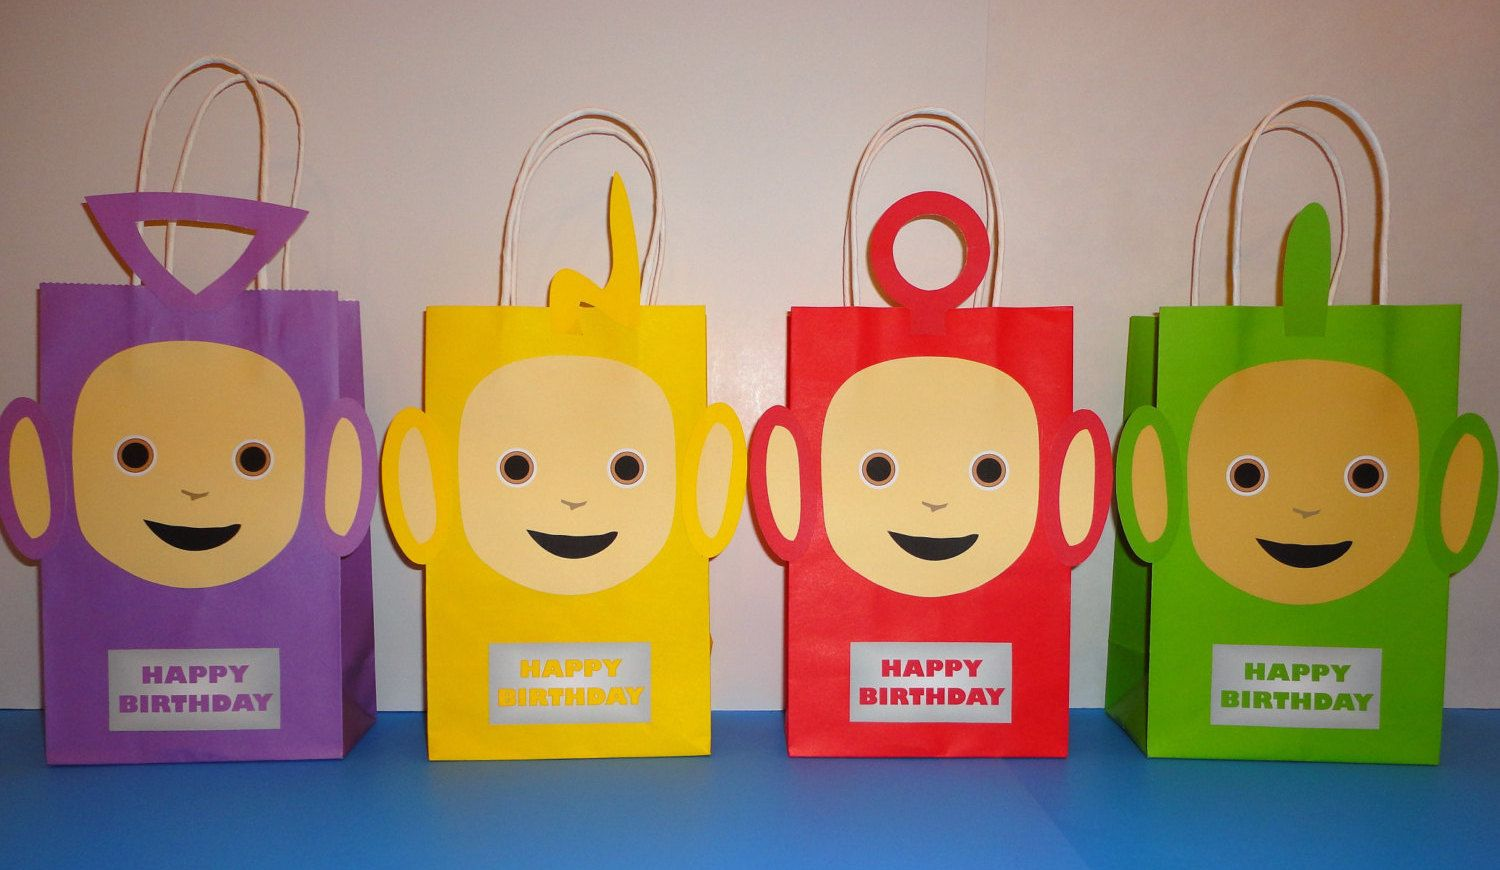 Teletubbies Party Plastic Loot Bags Birthday Party Kids Gift Fun Boys Girls